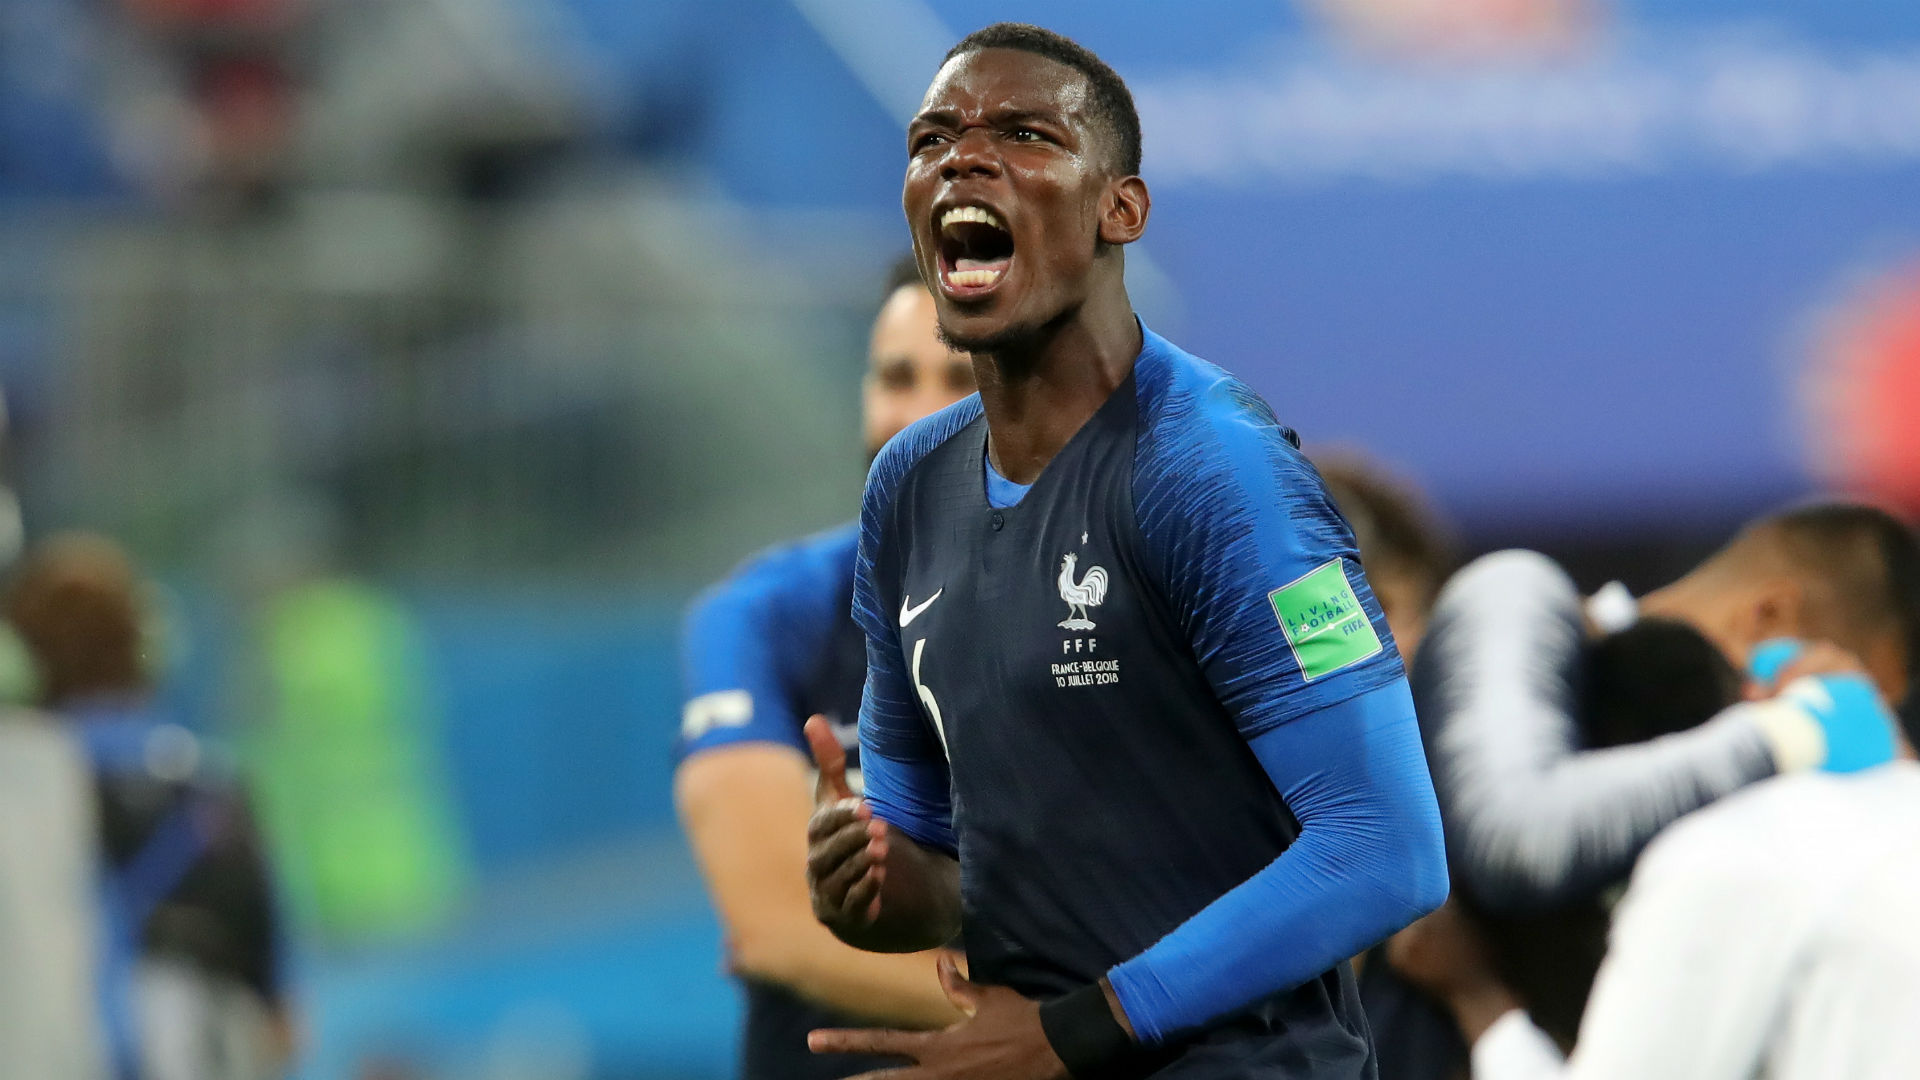 World Cup 2018 On US TV: How To Watch & Live Stream